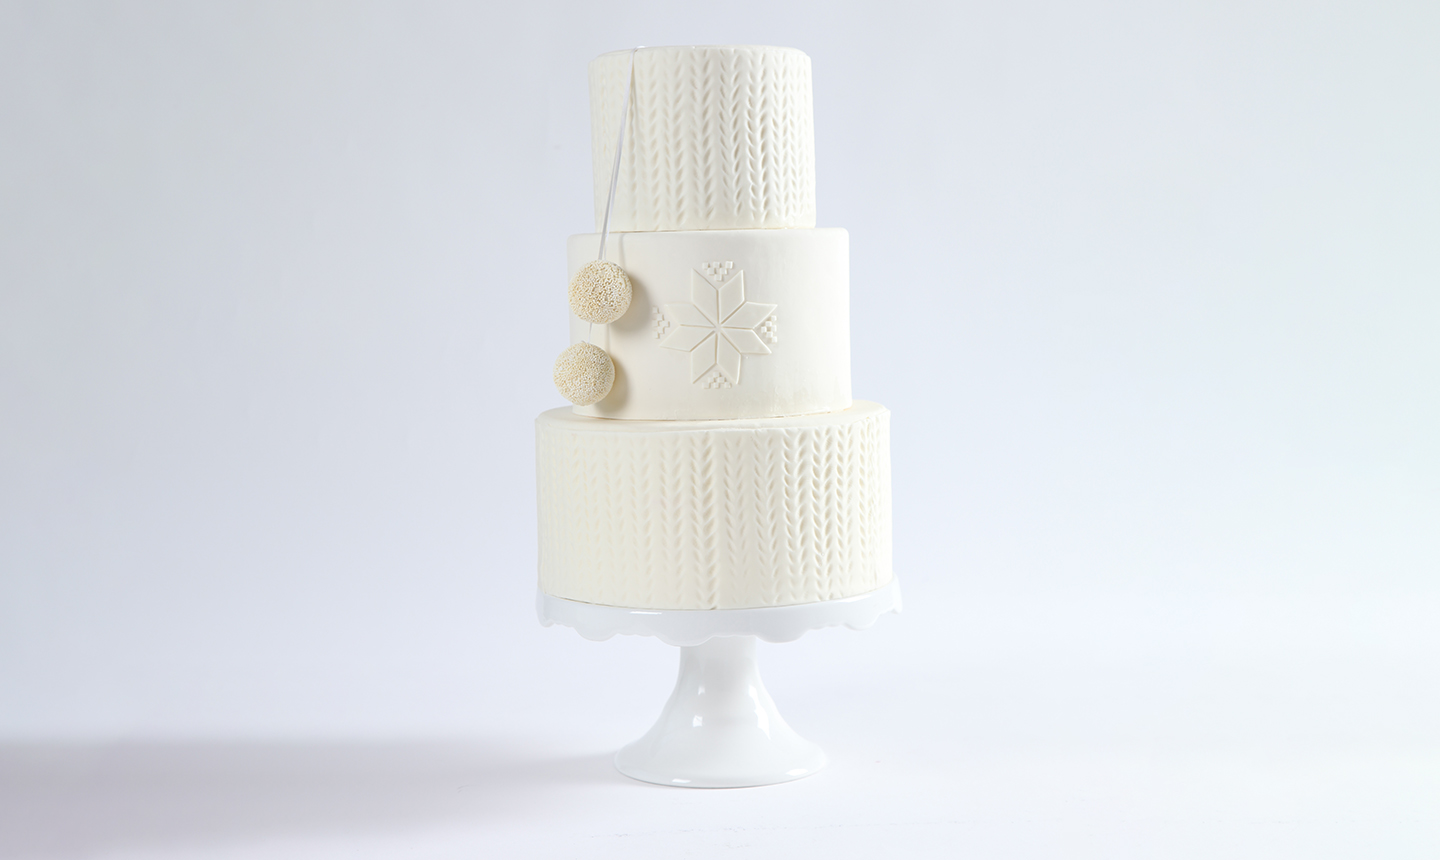 three tiered winter white cake with a snowflake and pom pom design